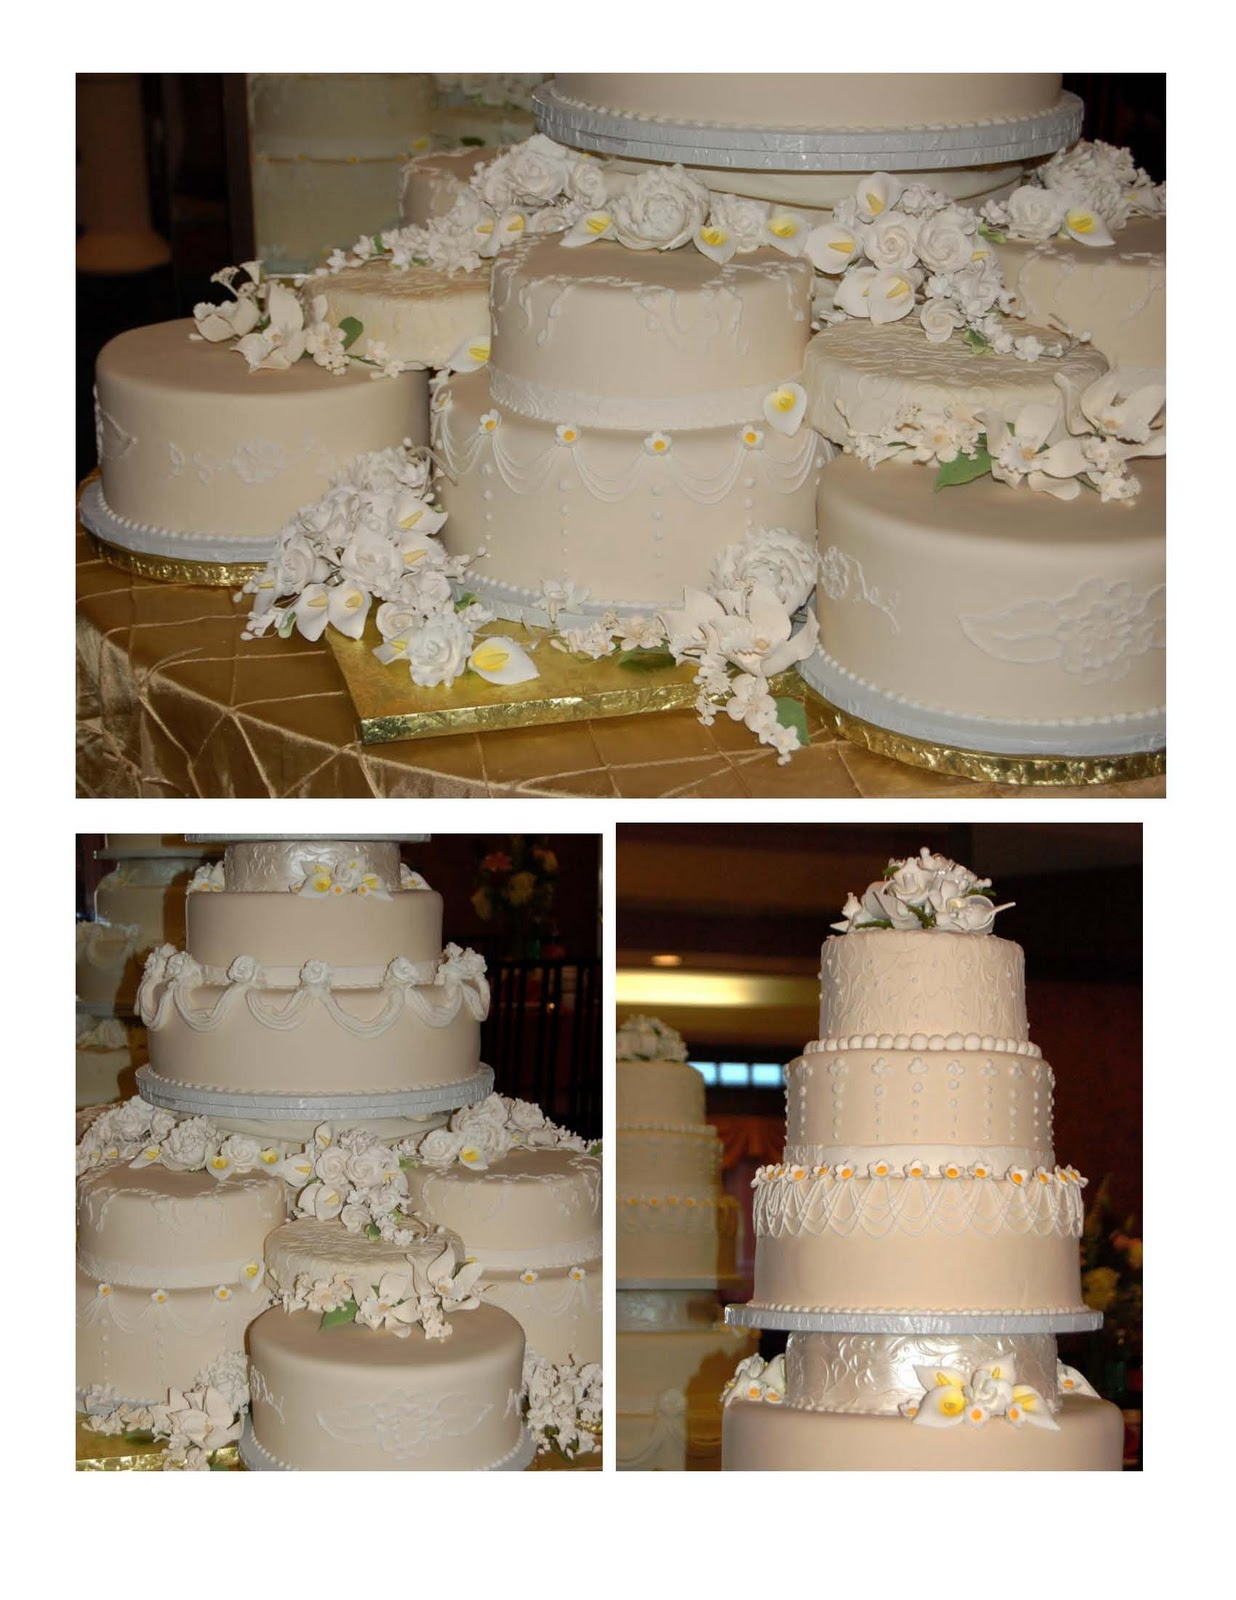 Wedding Cake Structure Designs submited images